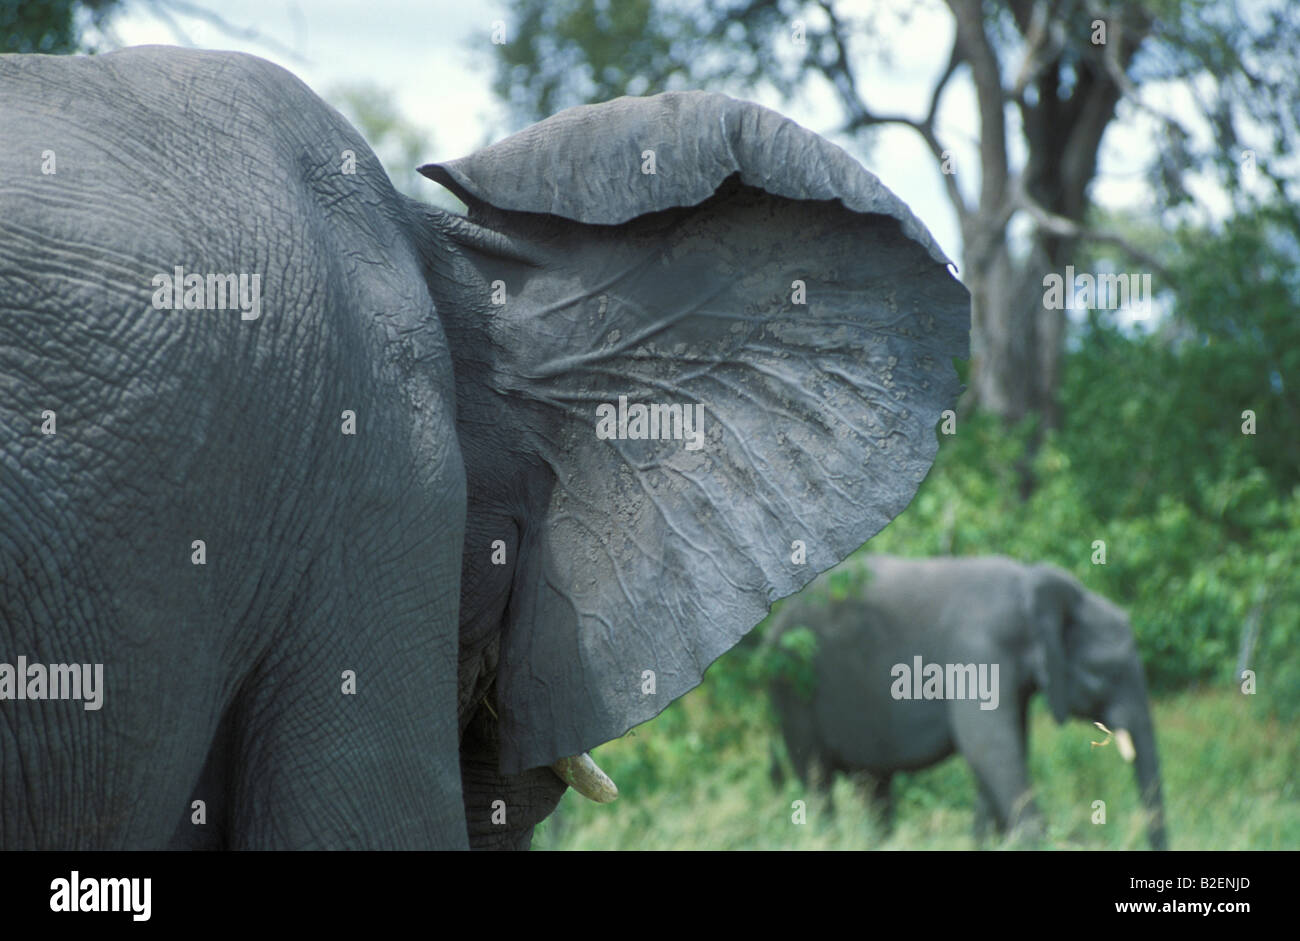 Close Up View Of The Rear Of An Elephant S Ear Showing The Large